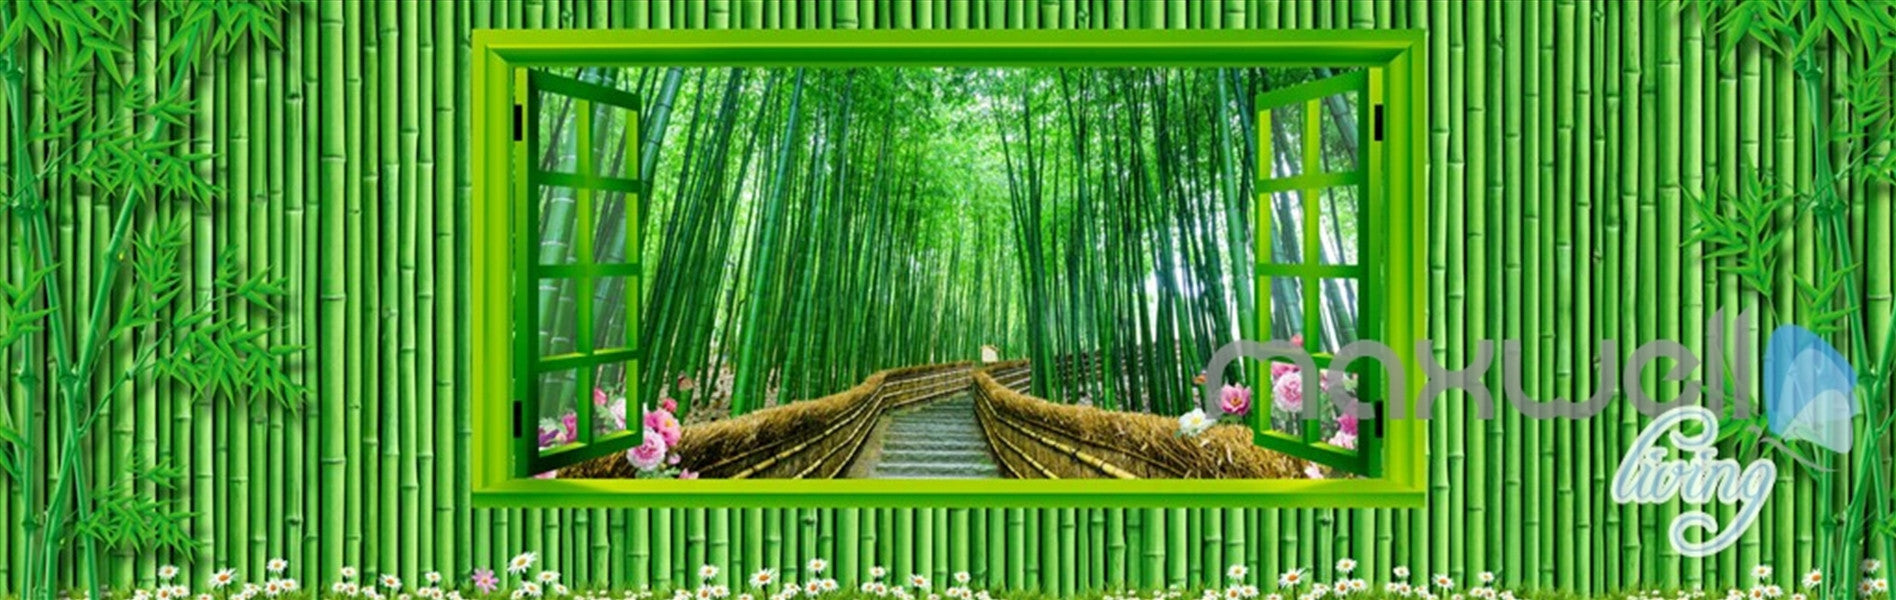 3d bamboo house froest window view entire living room wallpaper 3d bamboo house froest window view entire living room wallpaper wall mural art idcqw 000174